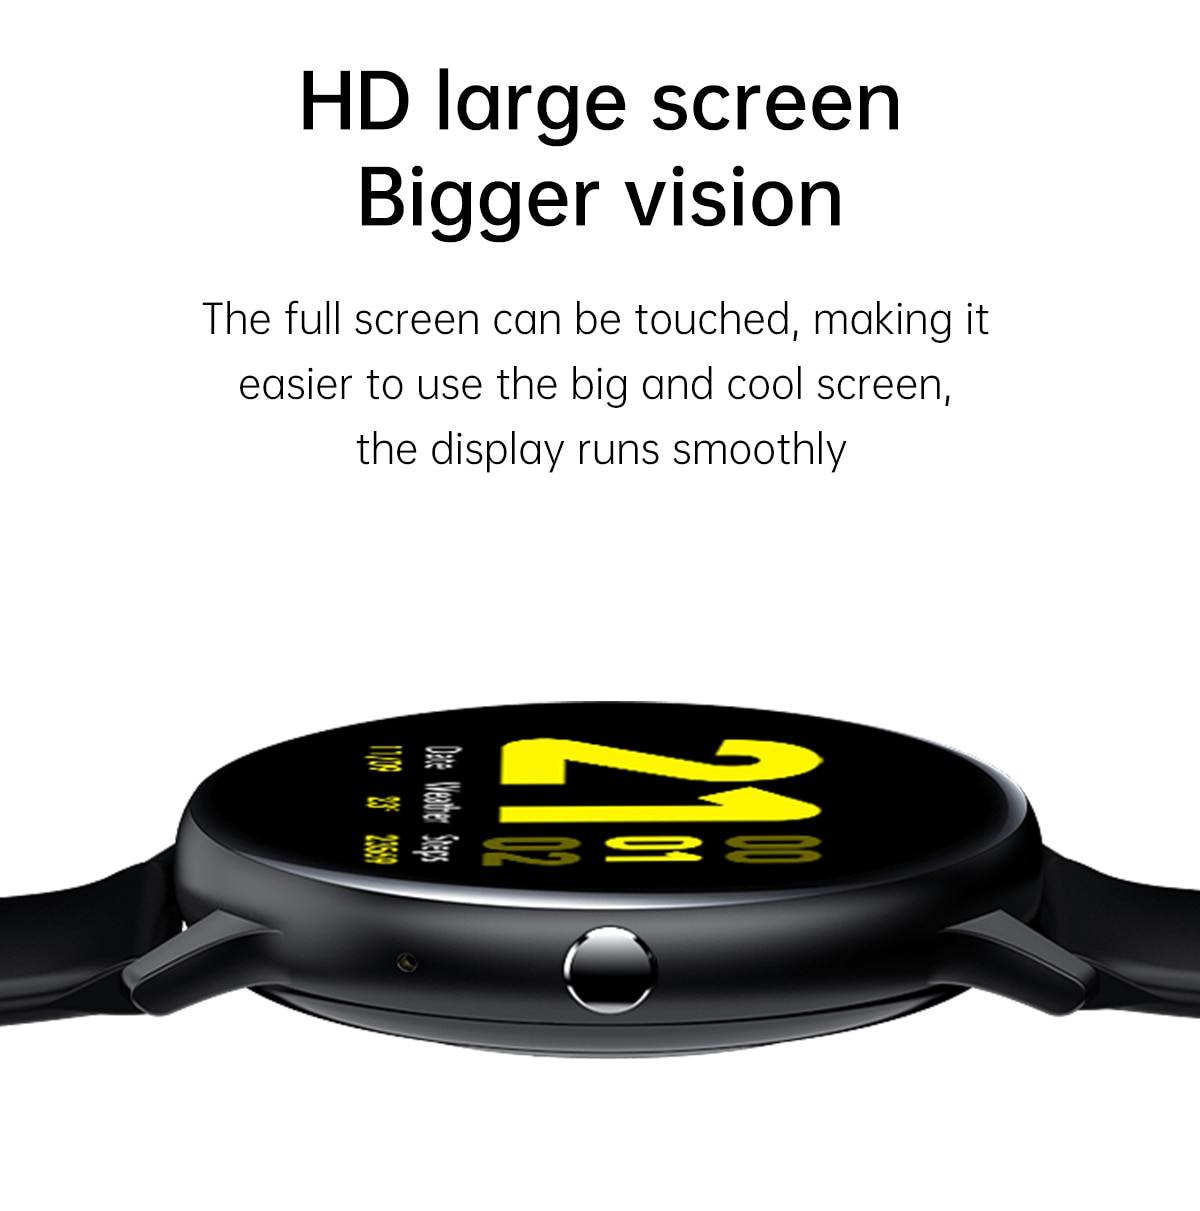 Hc16bd1ecab394ce8a3804c2f06a2299ep - LIGE 2021 Bluetooth Answer Call Smart Watch Men Full Touch Dial Call Fitness Tracker IP67 Waterproof 4G ROM Smartwatch for women